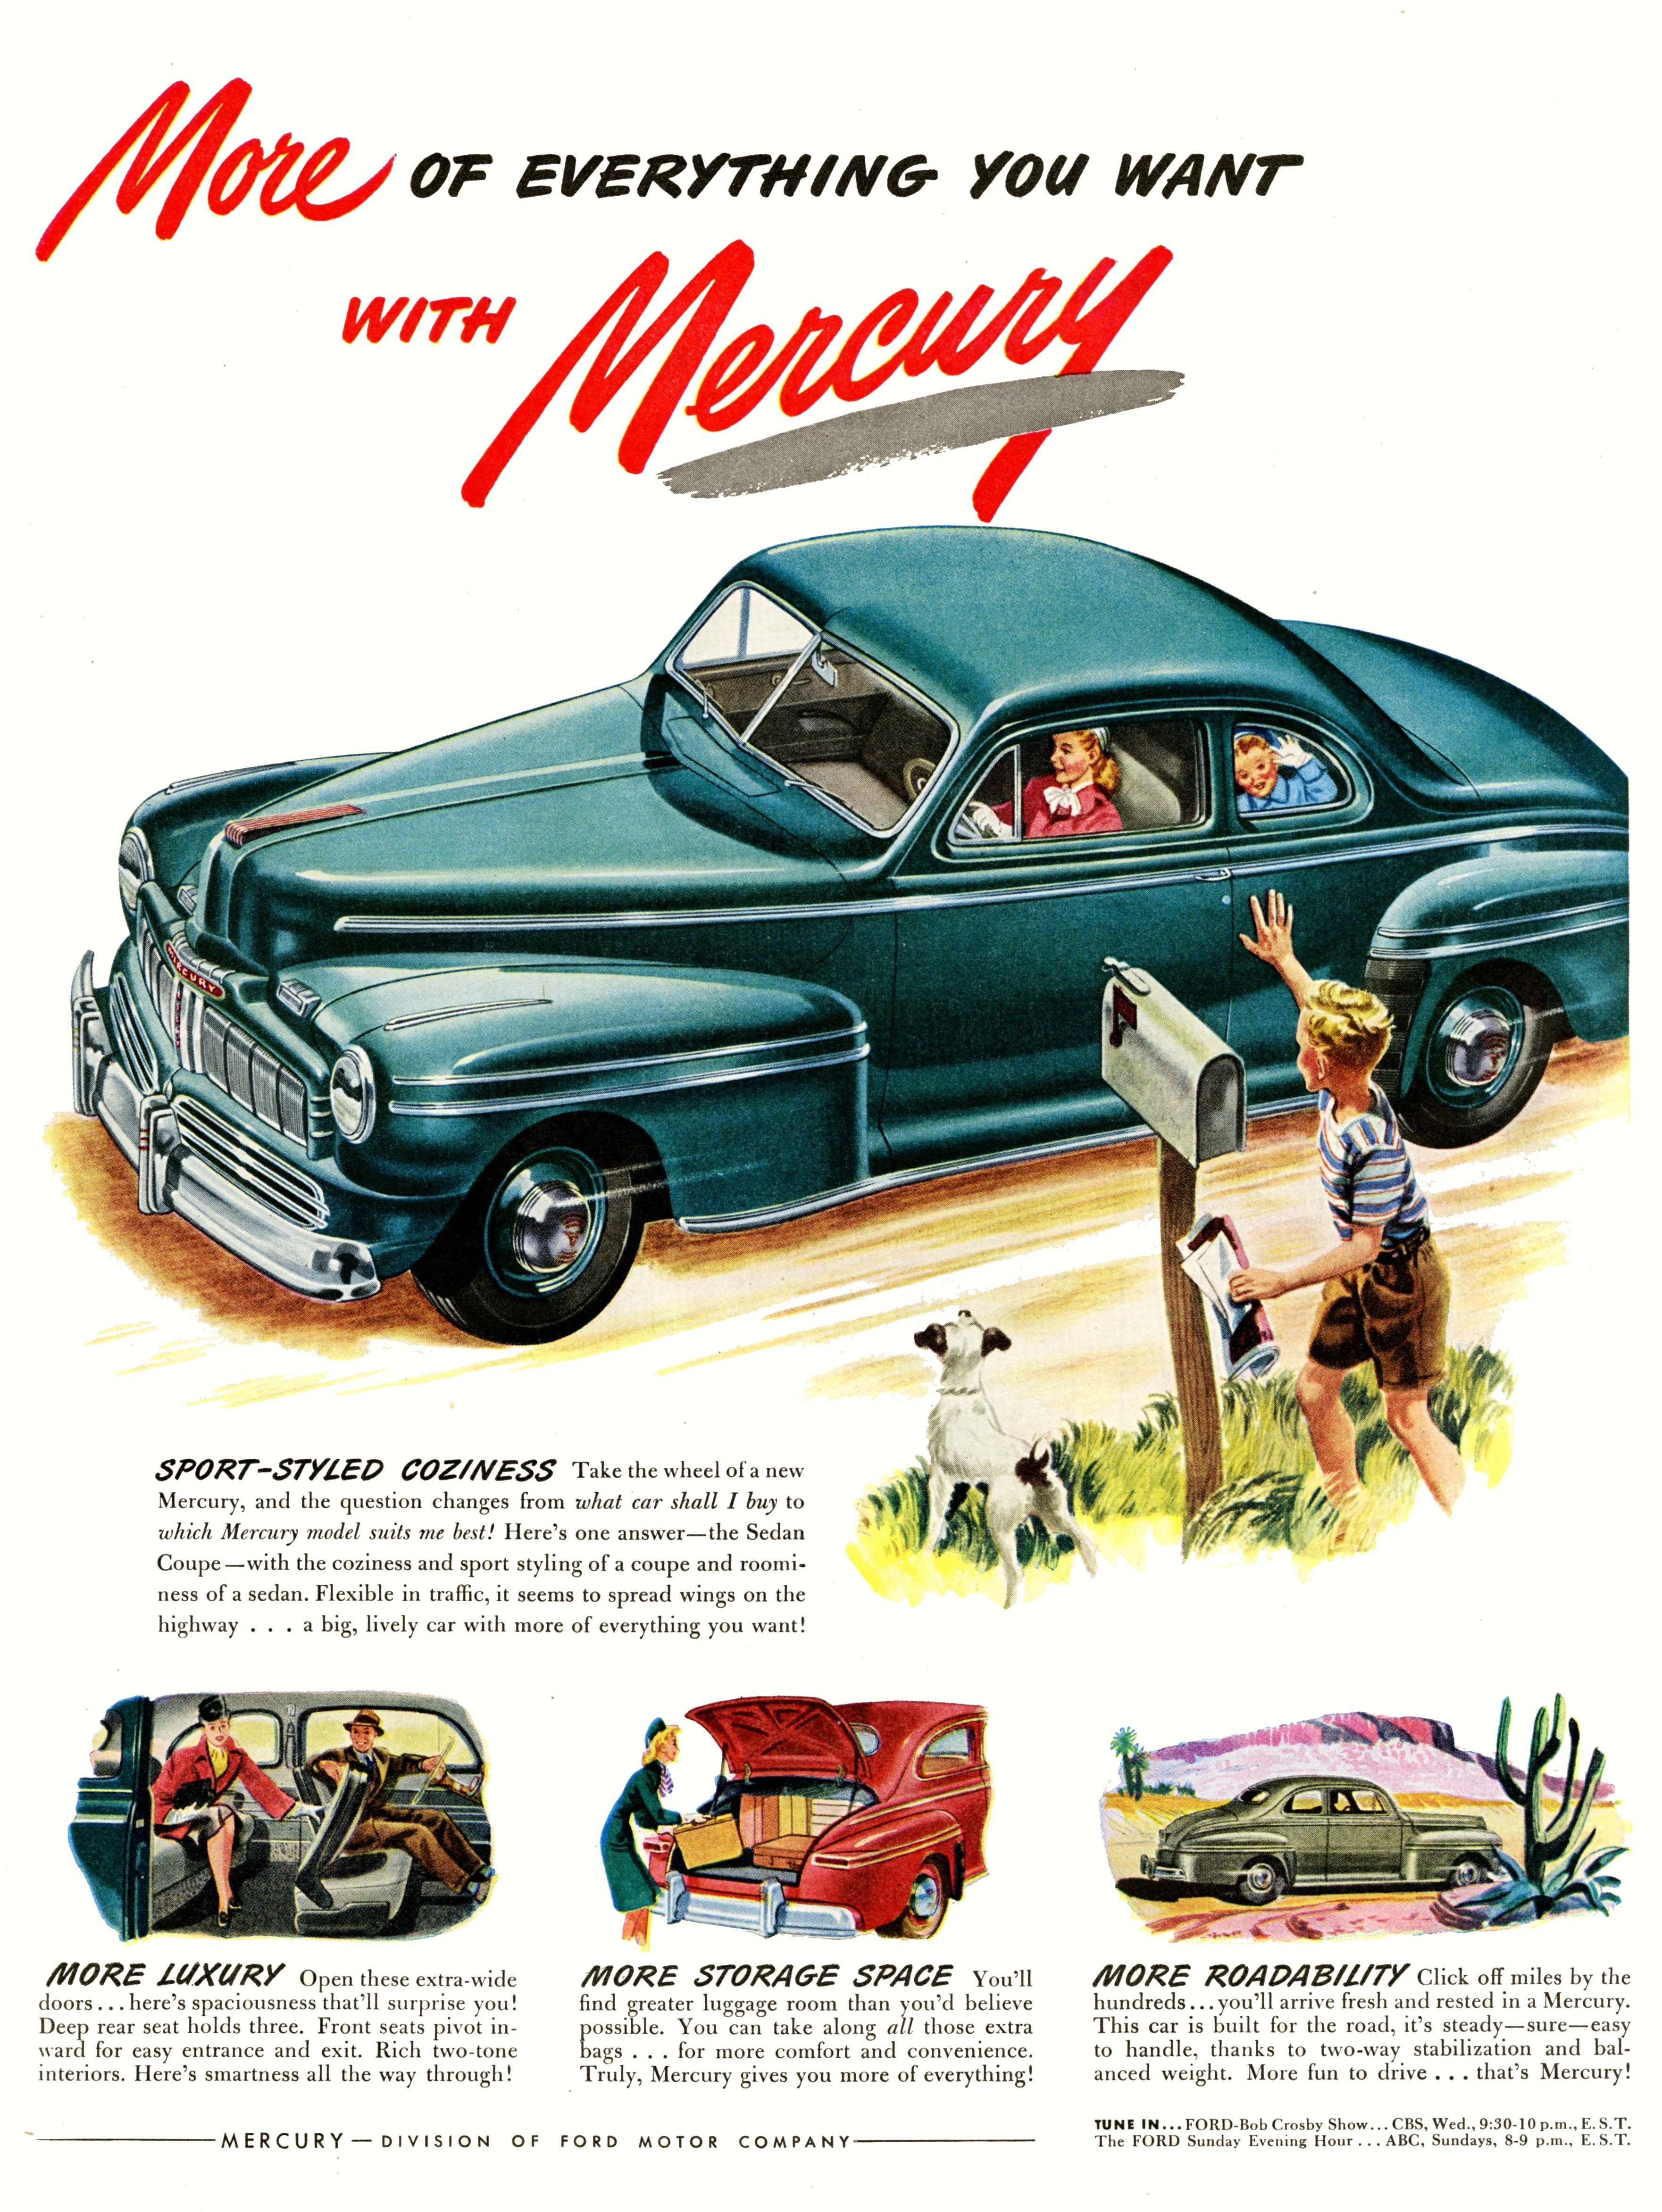 More of everything you want... | Mercury ads | Pinterest | Ads, Cars ...